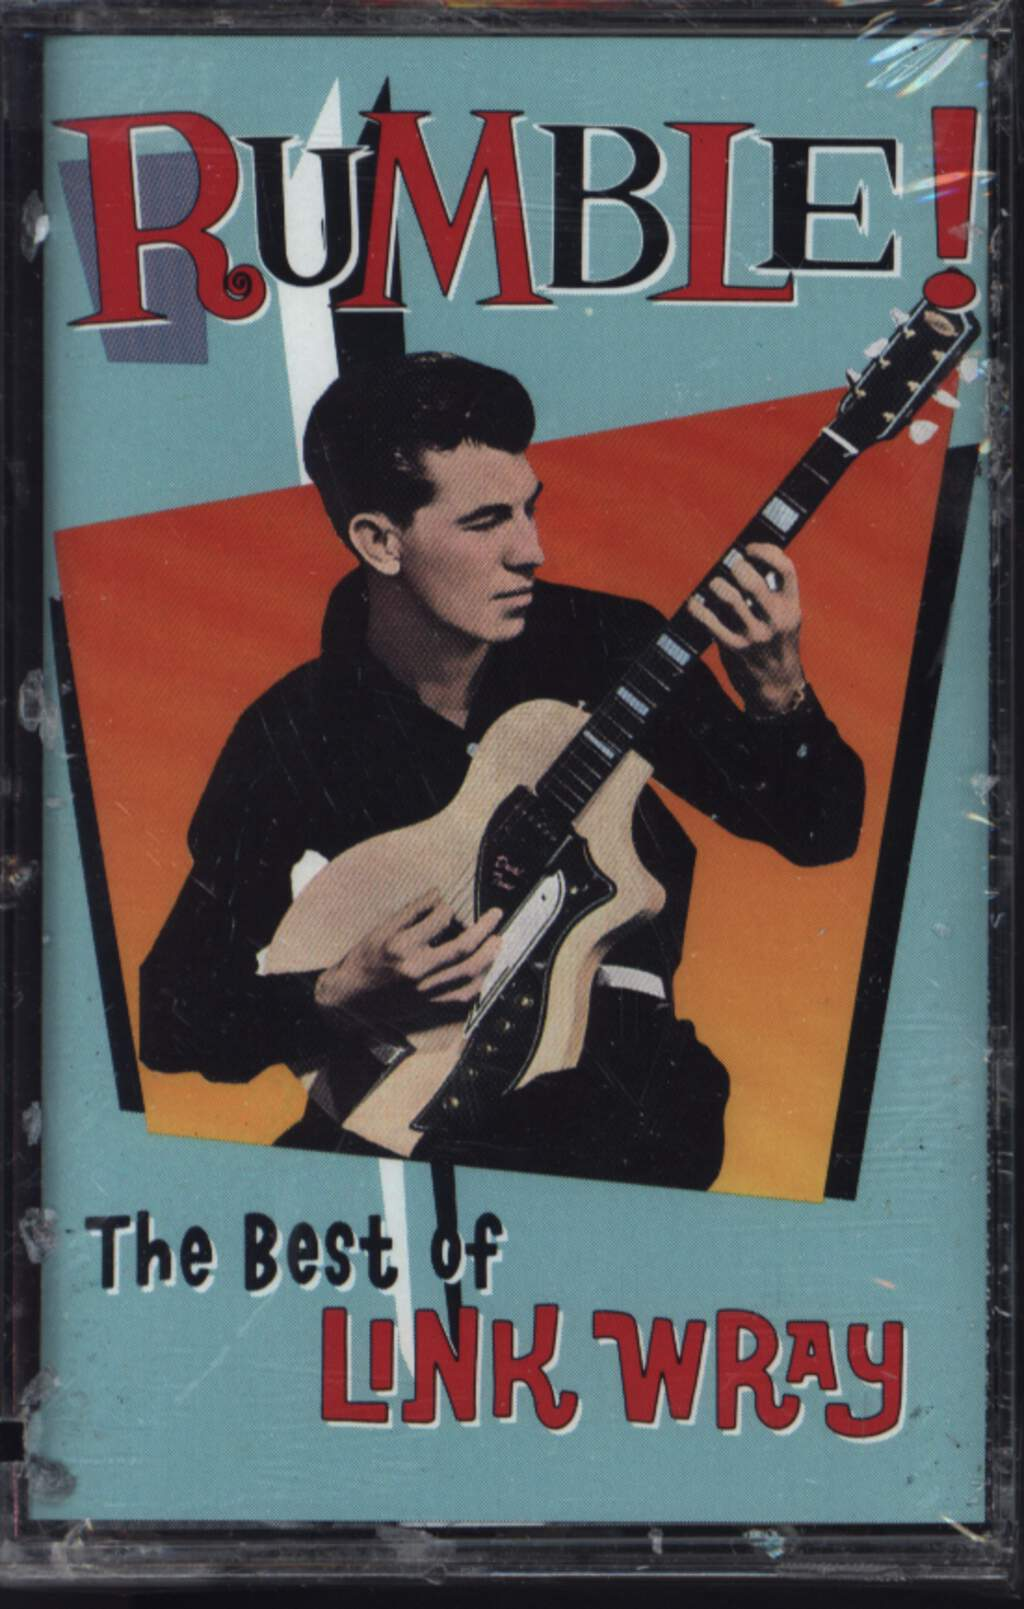 Link Wray: Rumble! The Best Of Link Wray, Tape